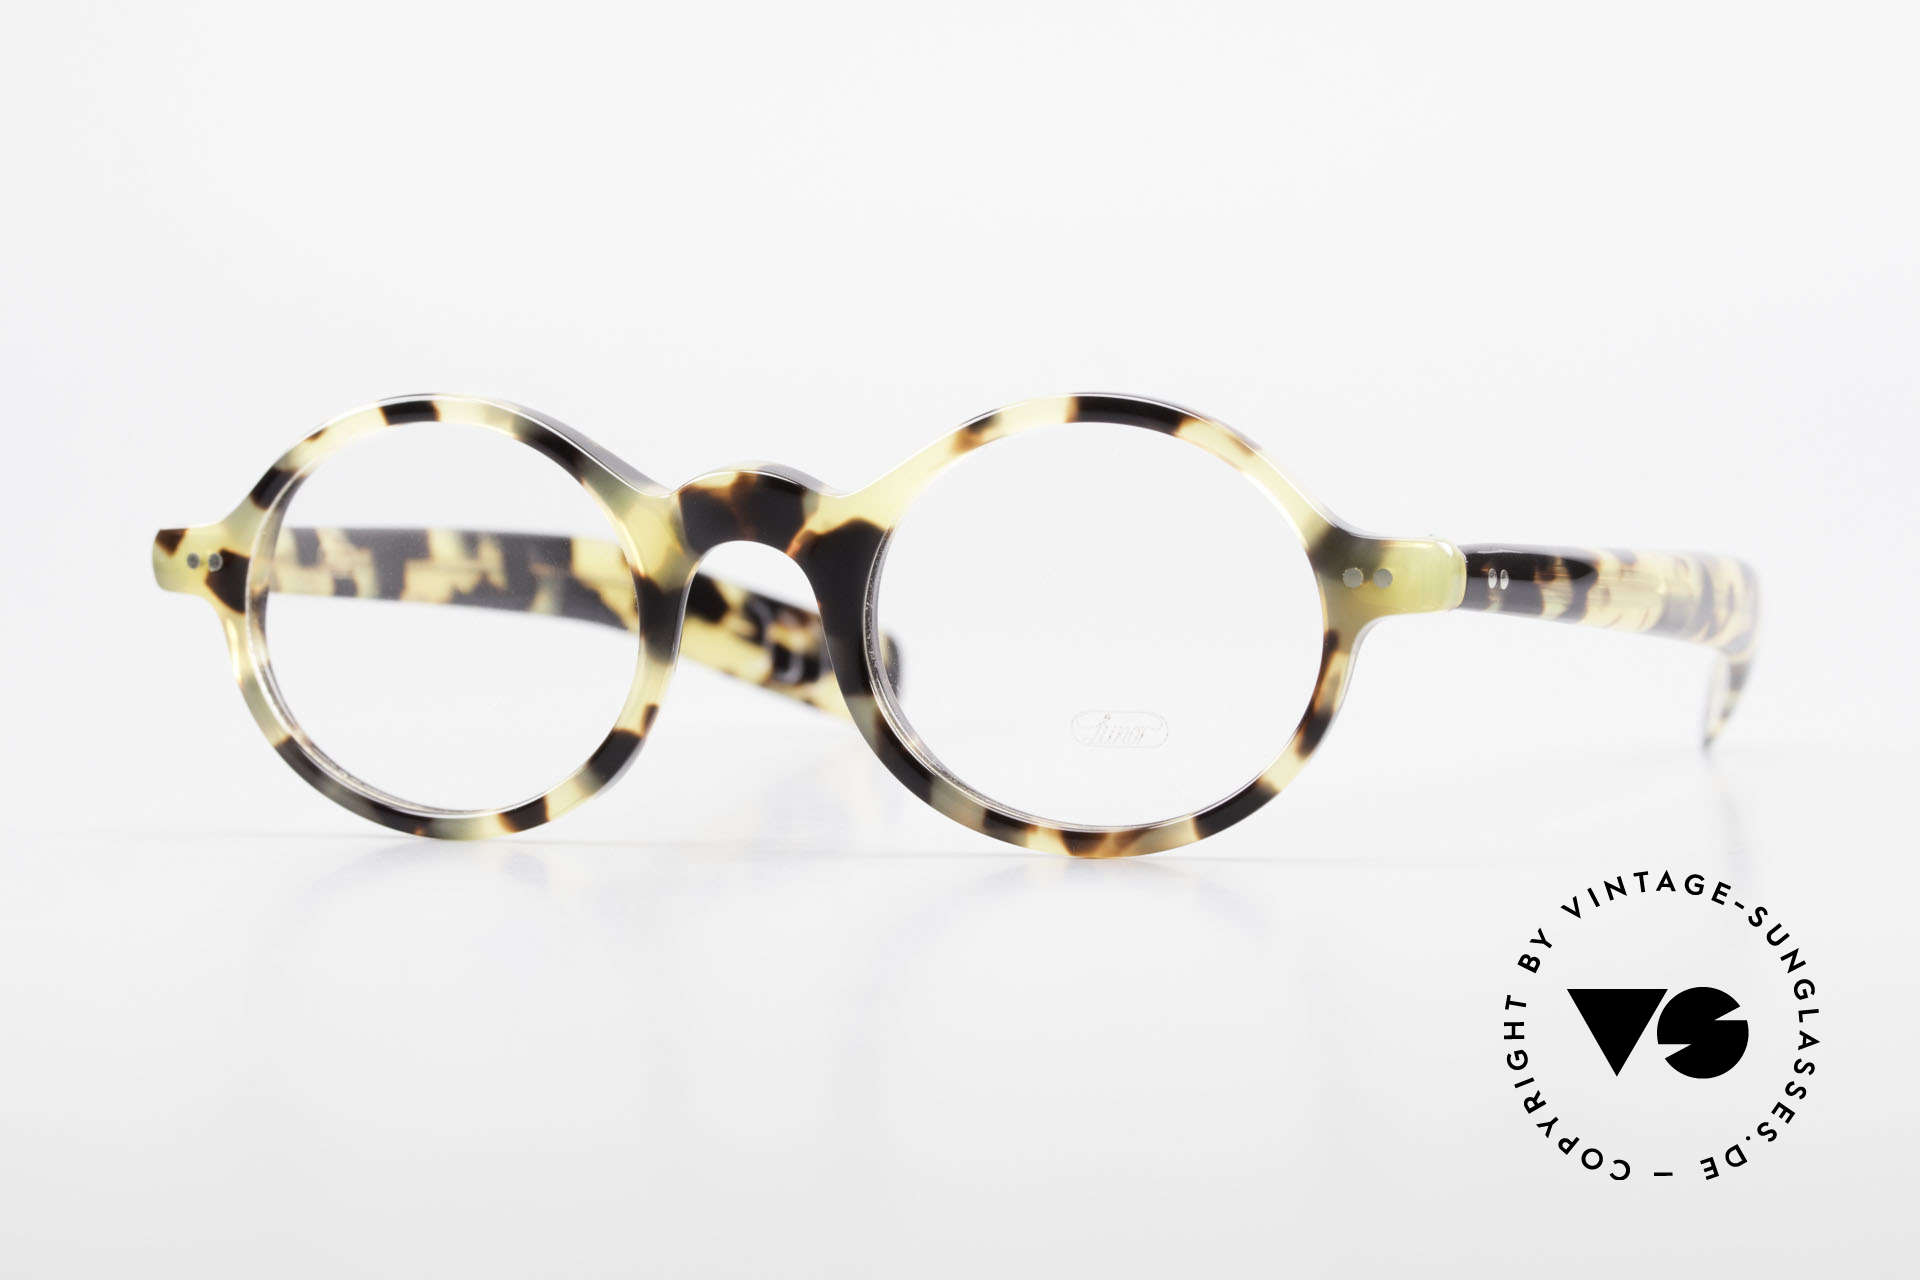 Lunor A52 Oval Lunor Glasses Acetate, LUNOR glasses, model 52 from the Acetate collection, Made for Men and Women